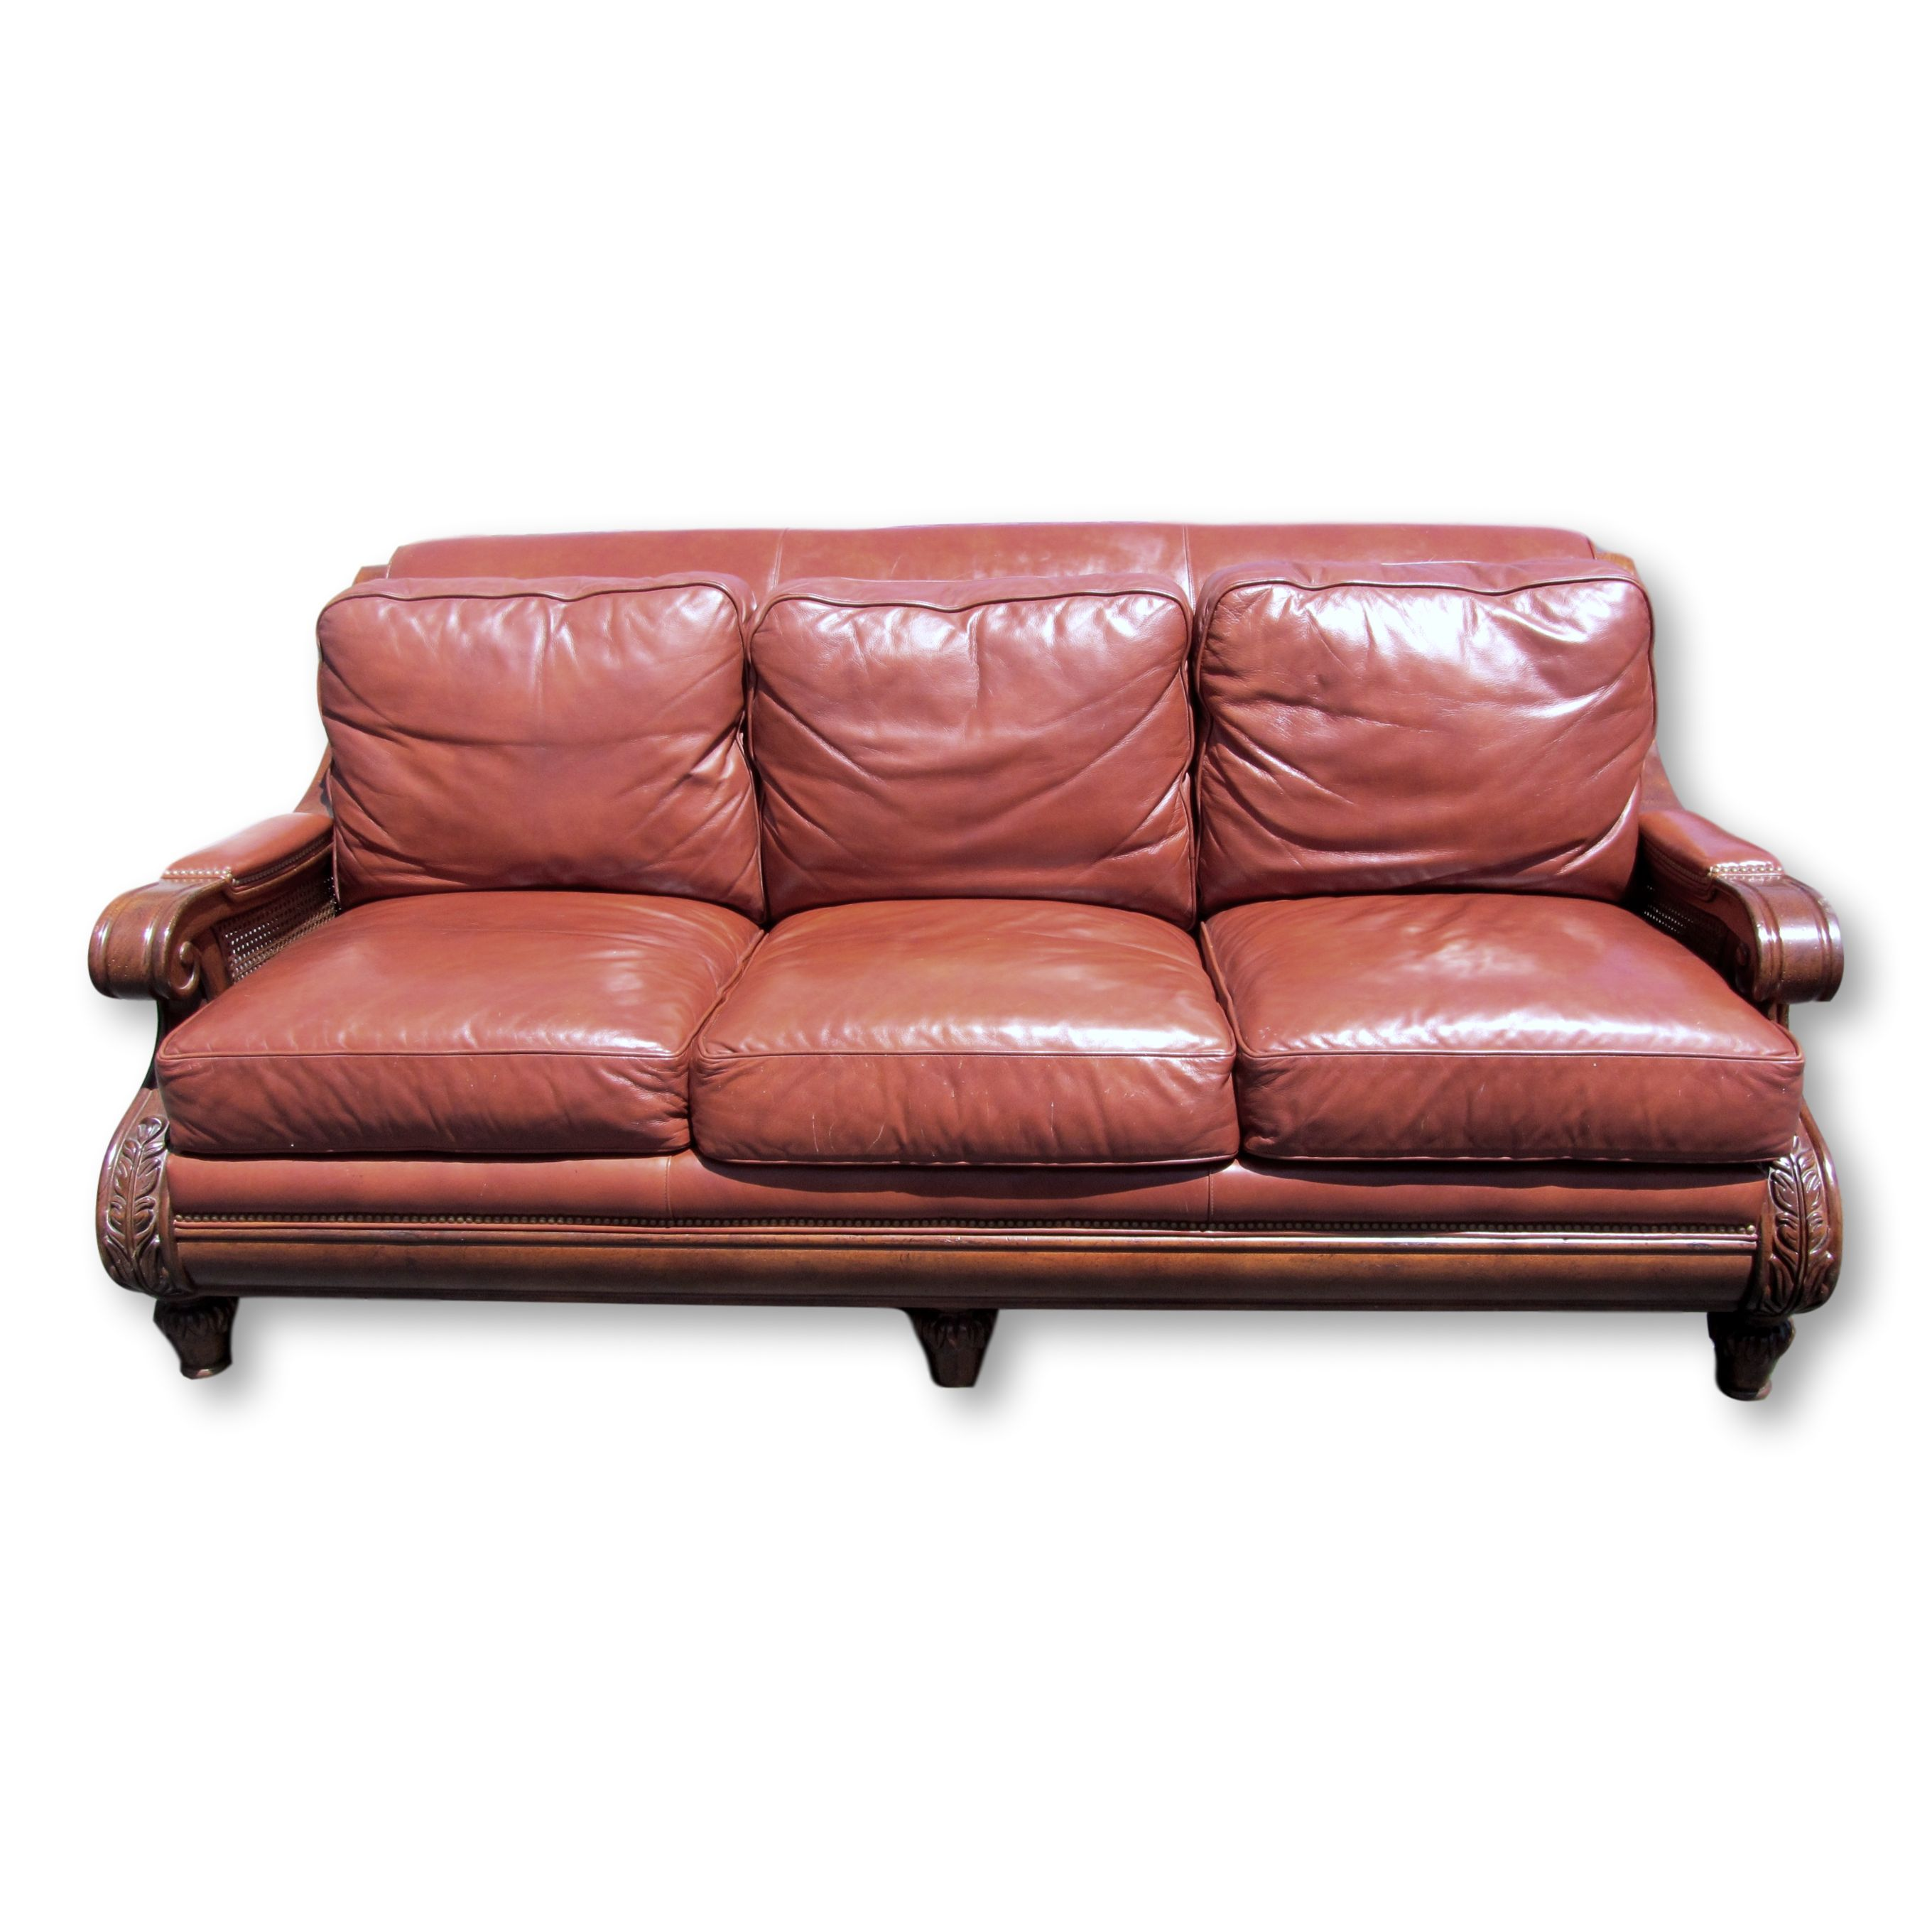 Hancock & Moore Somerset Sofa with Cane Sides | Products, Somerset ...